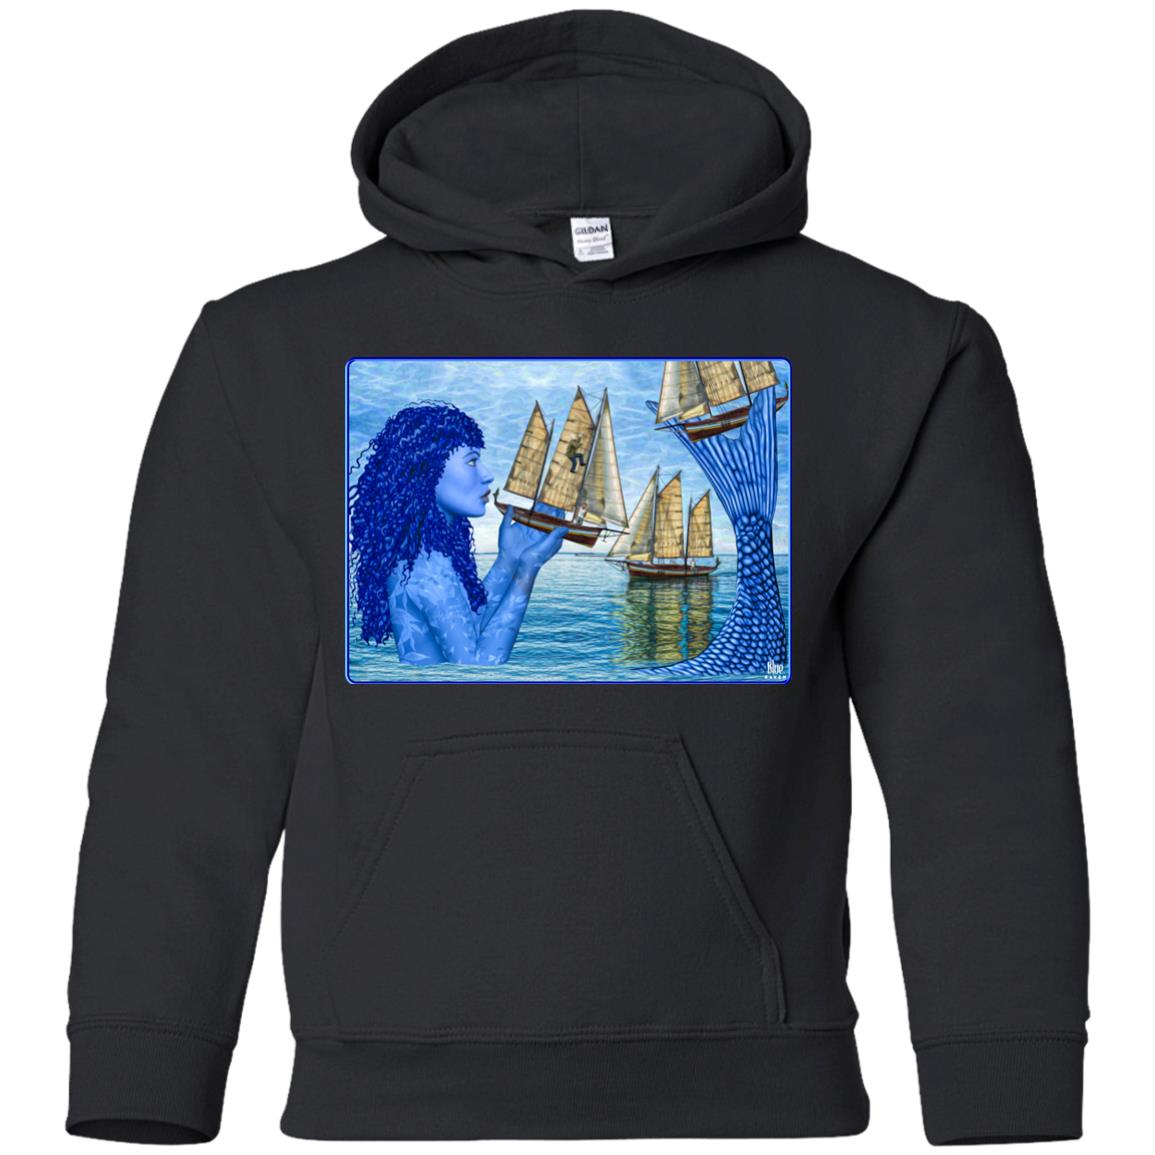 I Saw Three Ships - Youth Hoodie